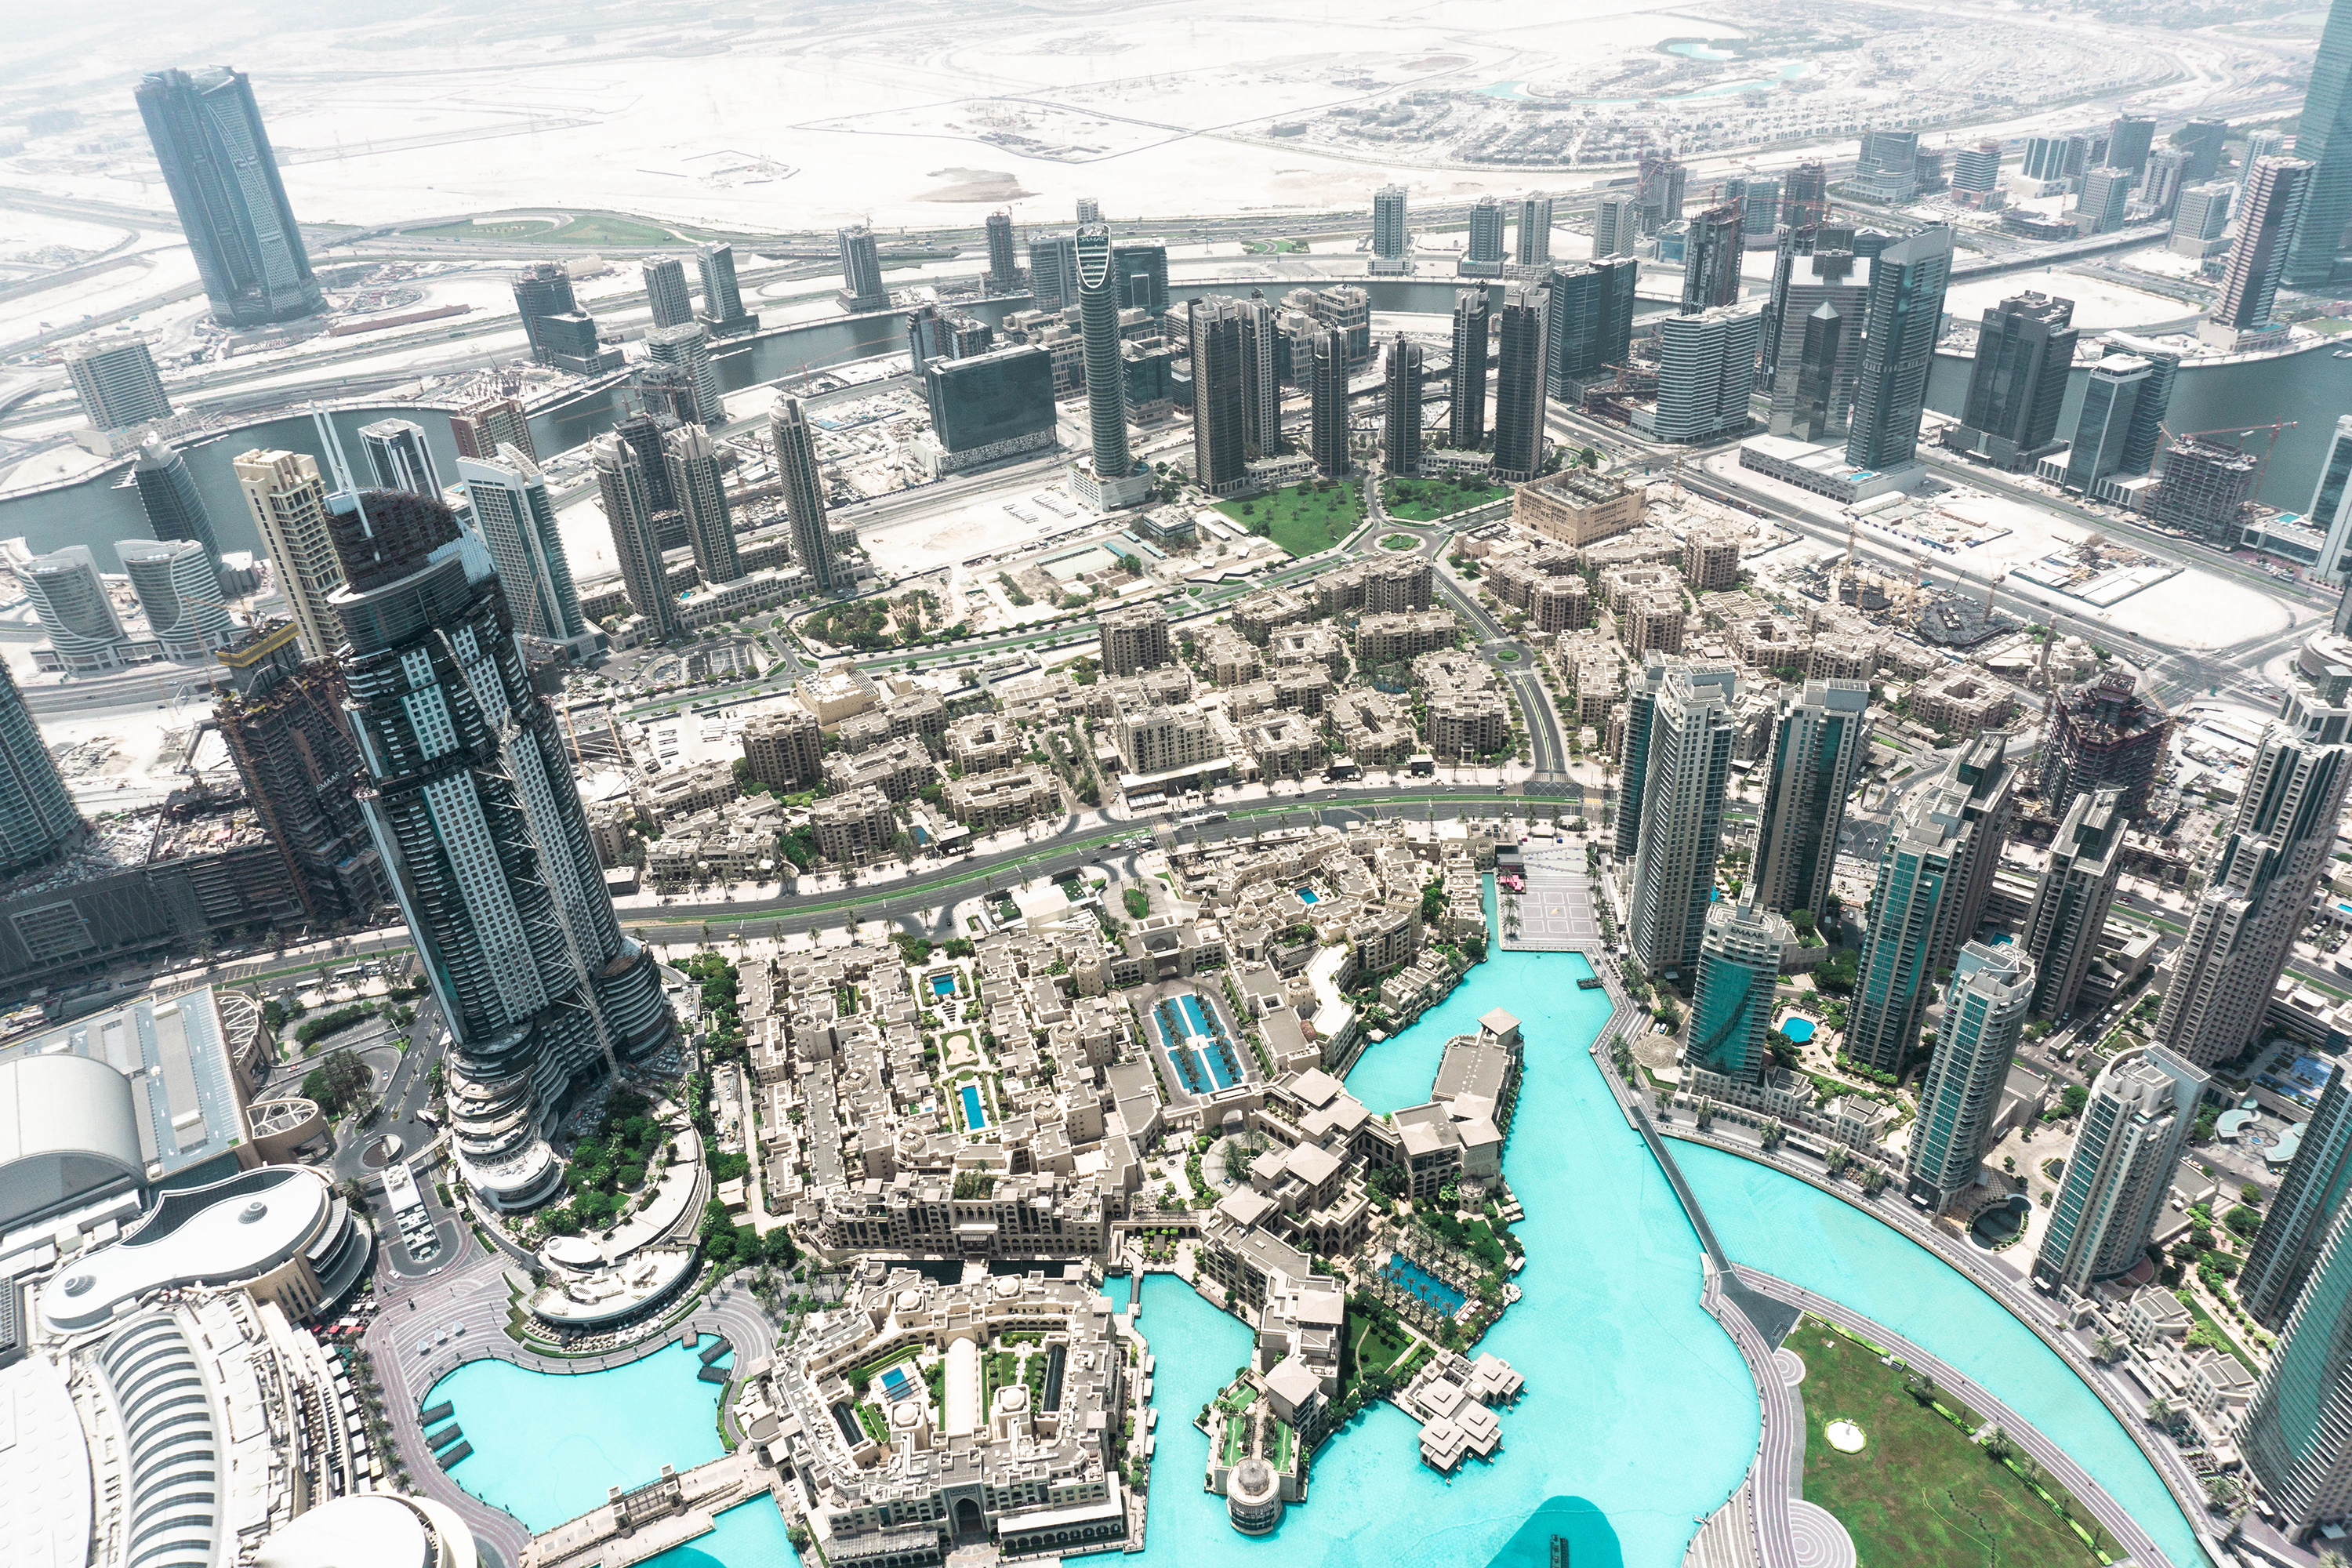 1 day in Dubai – downtown view from Burj Khalifa